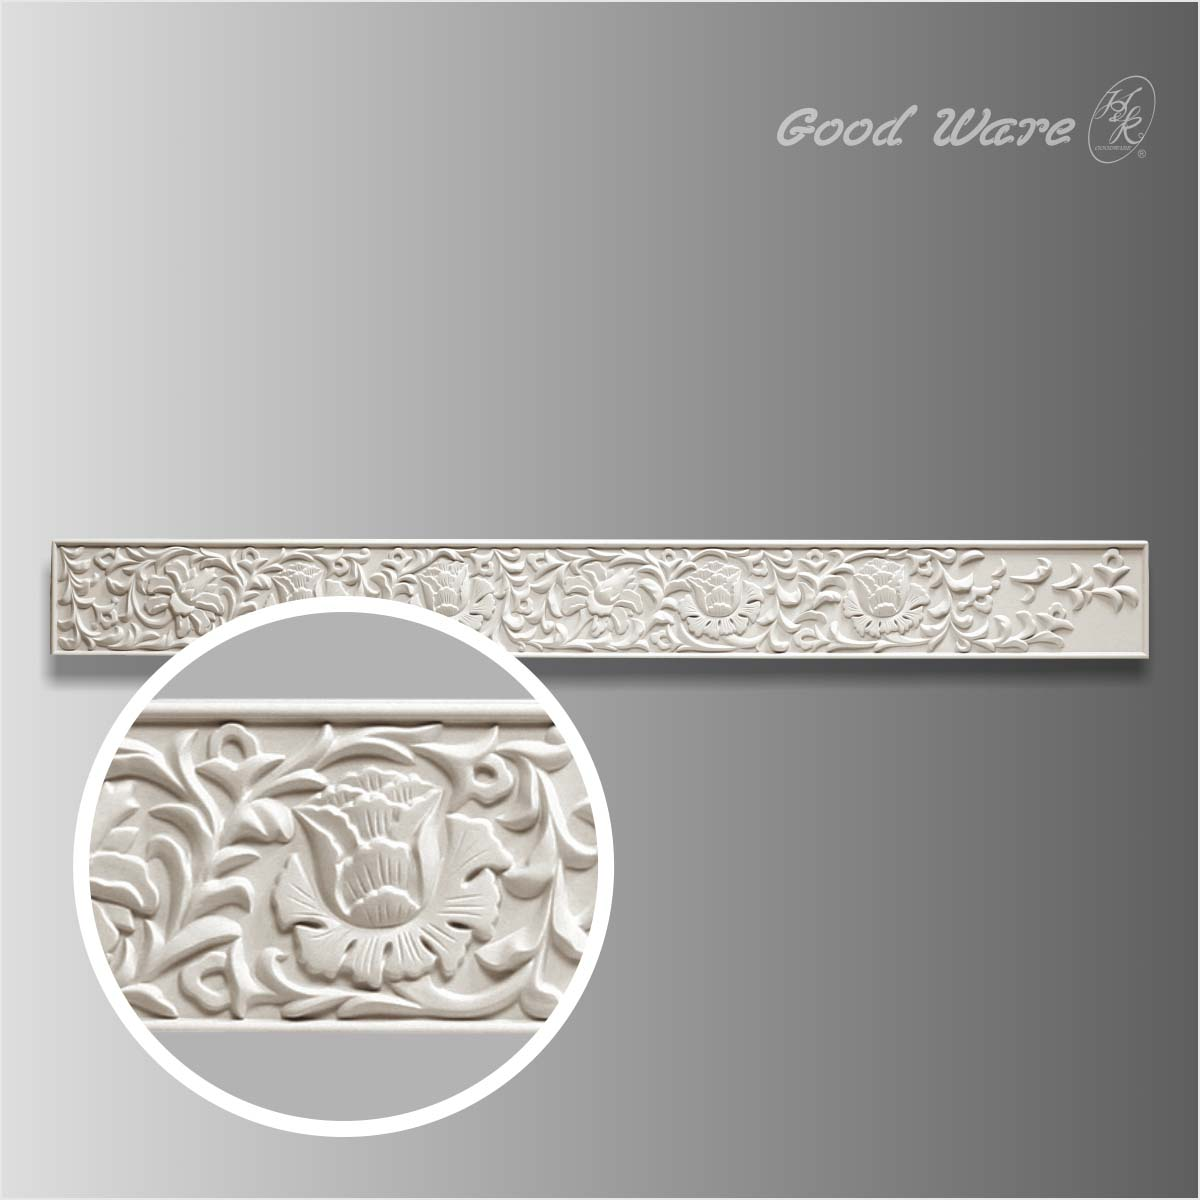 Decorative interior wall covering panels